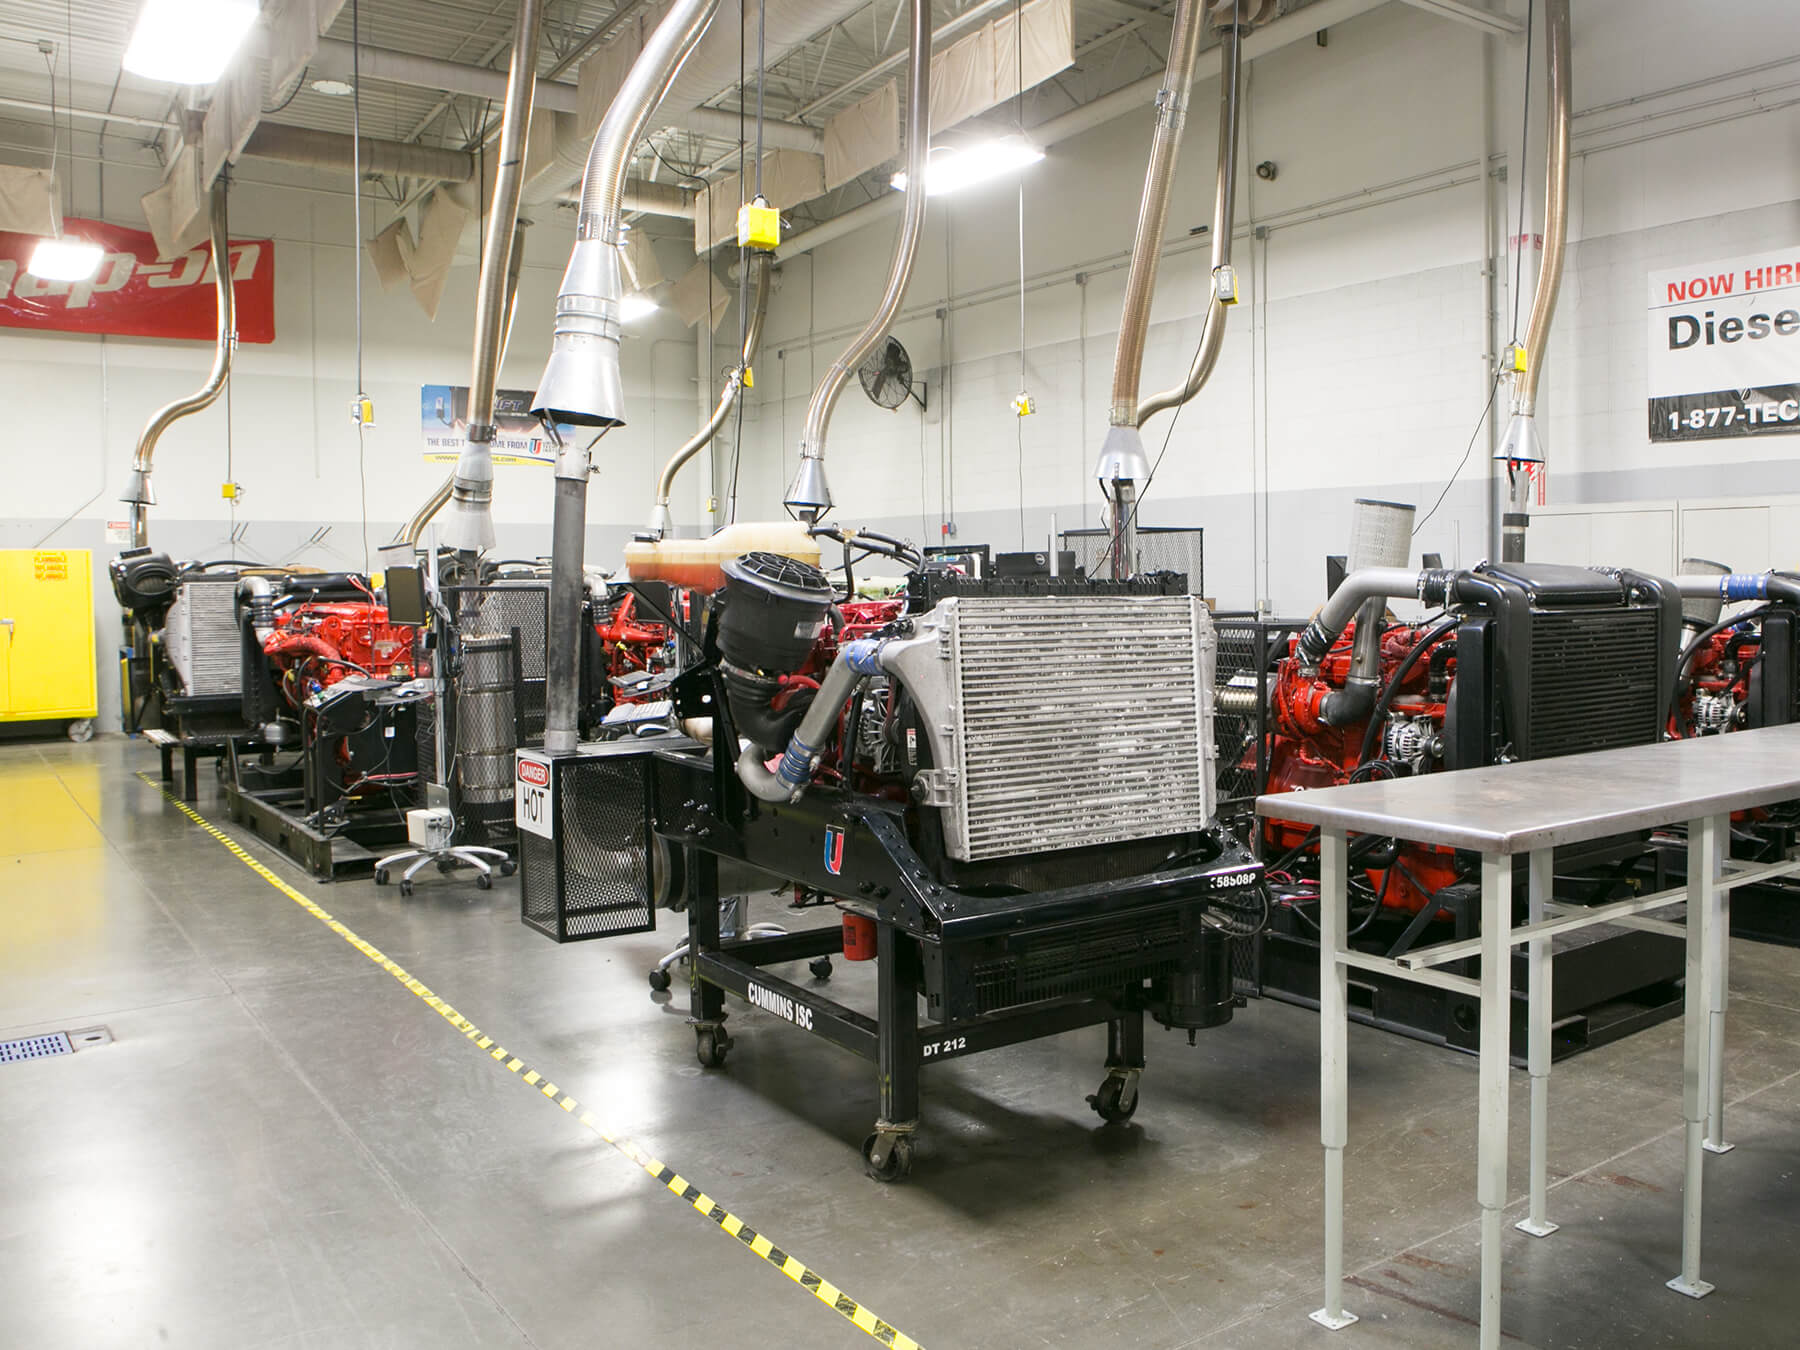 Diesel engines in the Diesel lab at Avondale Campus